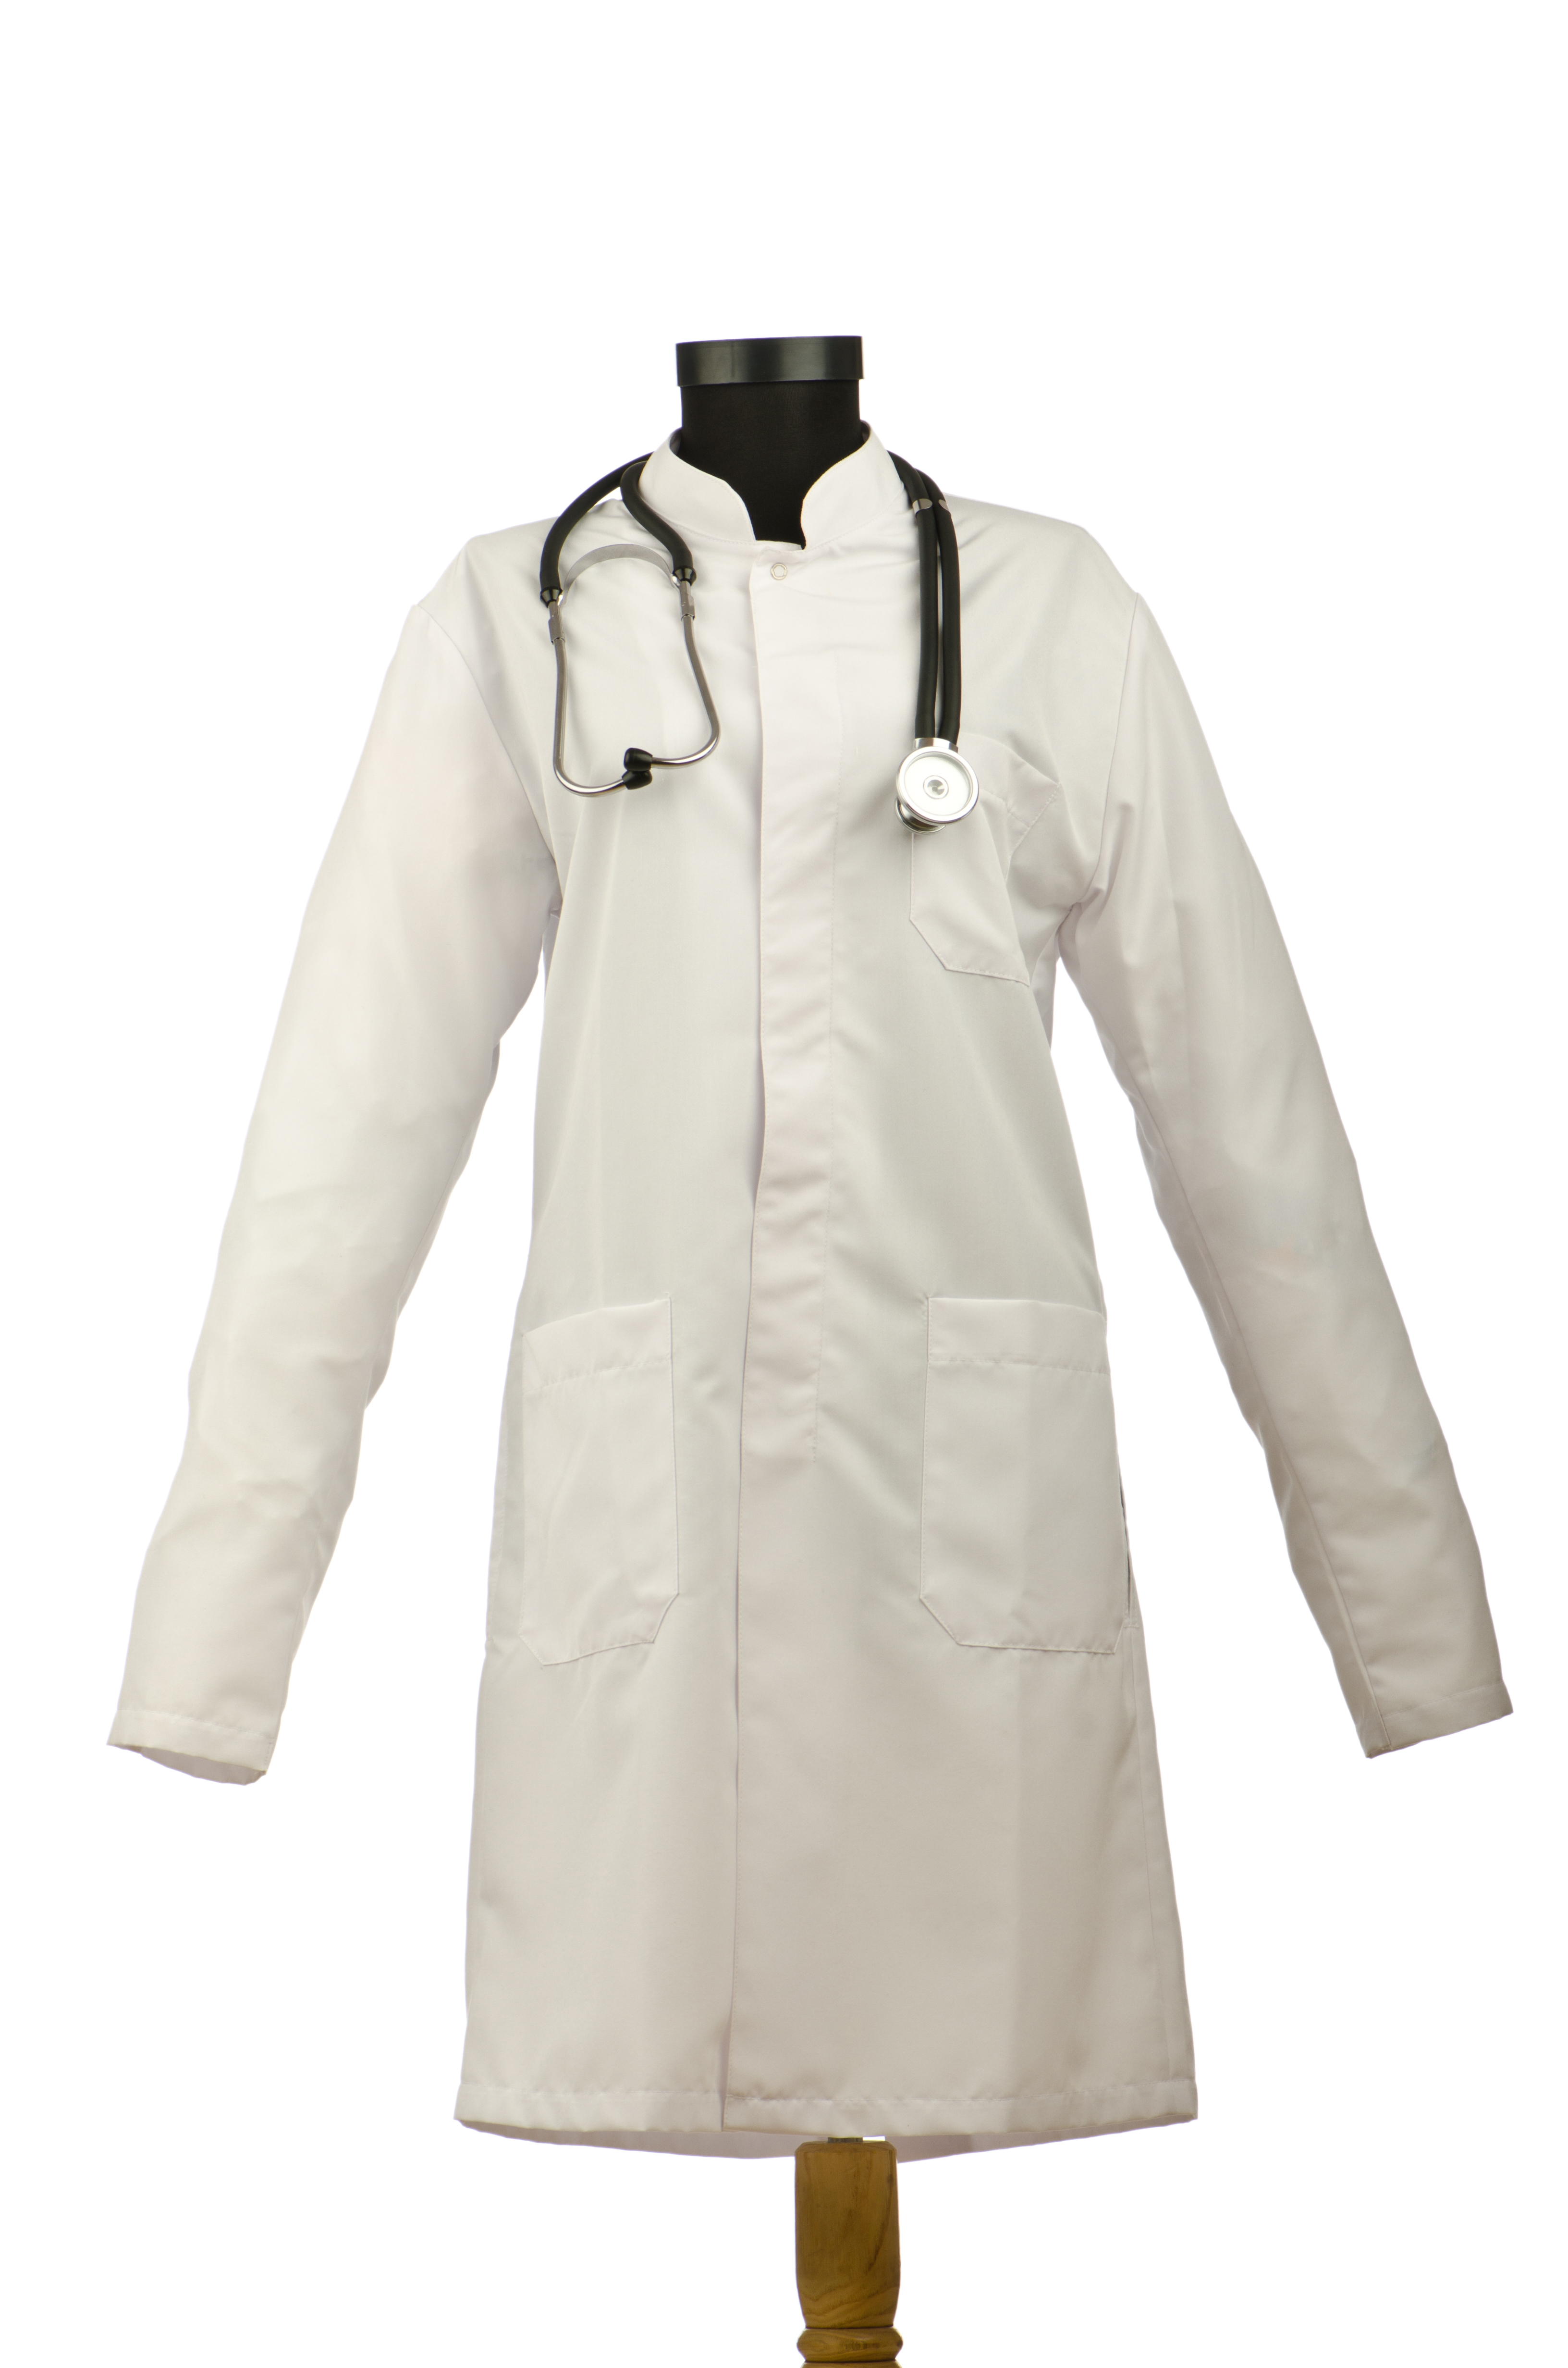 Splurging On A Designer Lab Coat Cost Per Wear